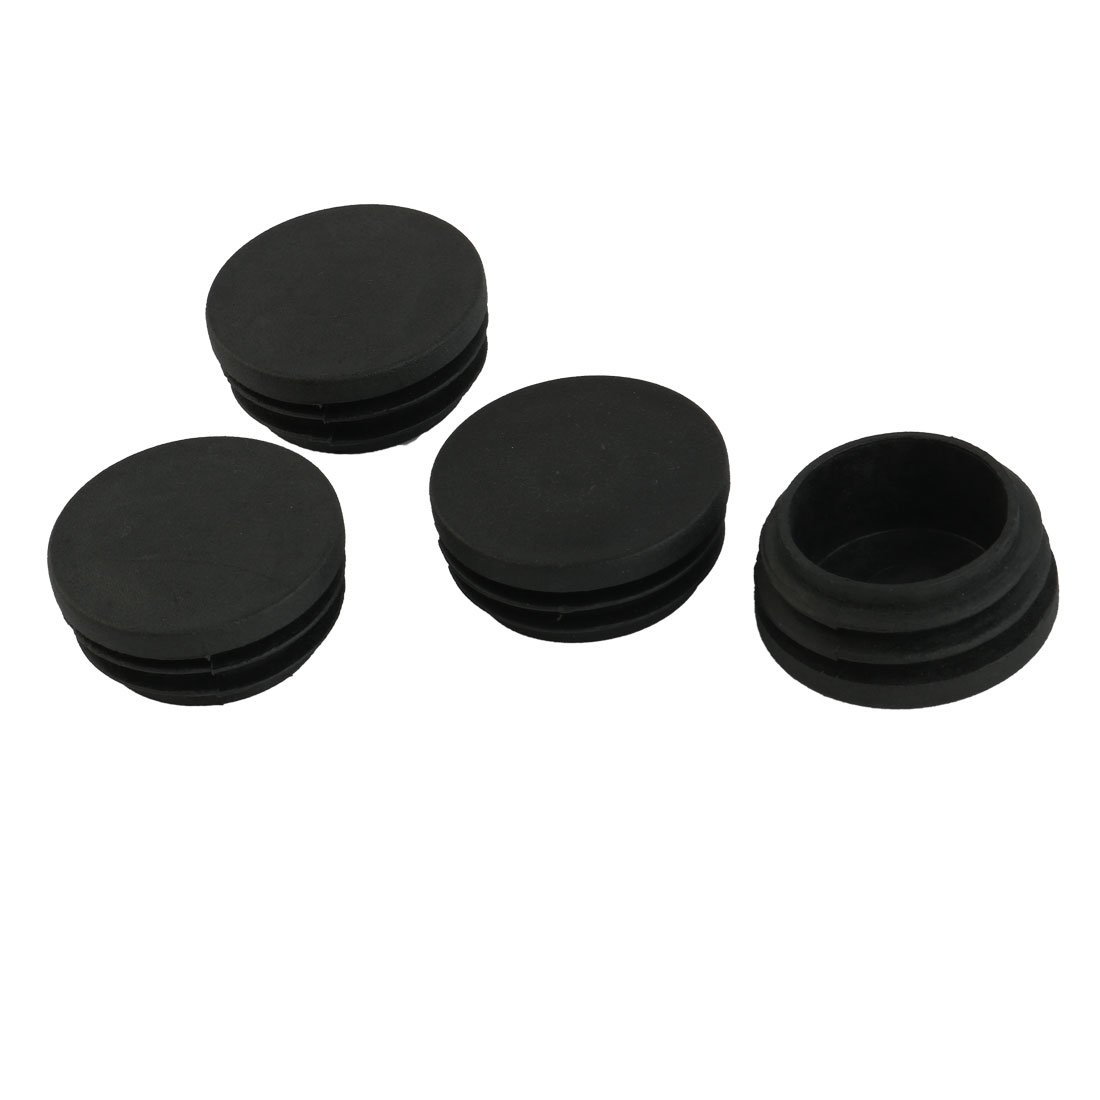 4 Pcs Furniture 38mm Diameter Screw Type Round Tube Insert Cover Black